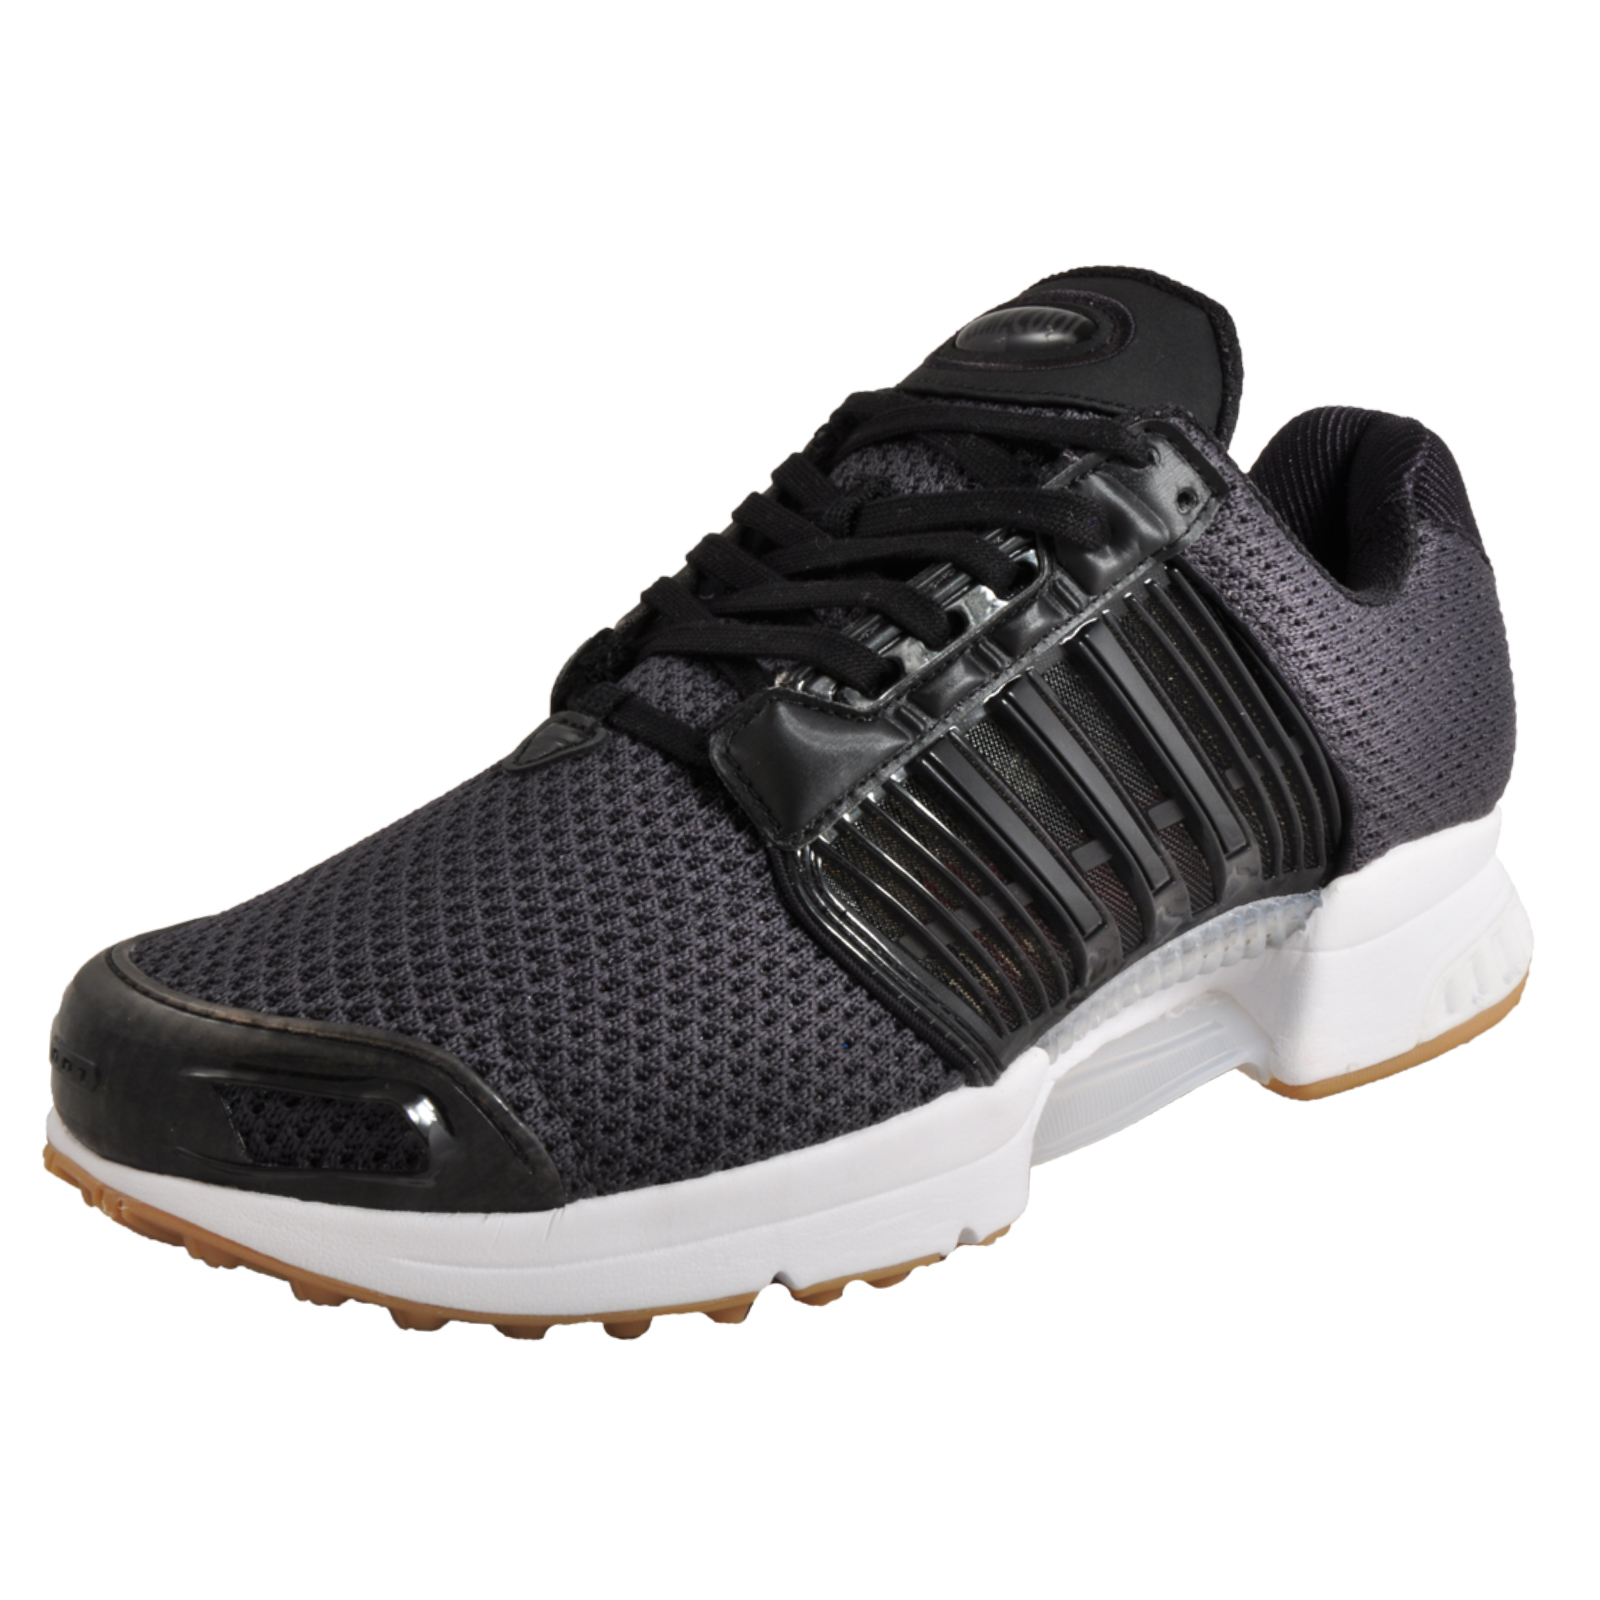 8b39fb66509 Details about Adidas Cimacool 1 Men s Retro Running Shoes Fitness Gym Trainers  Black